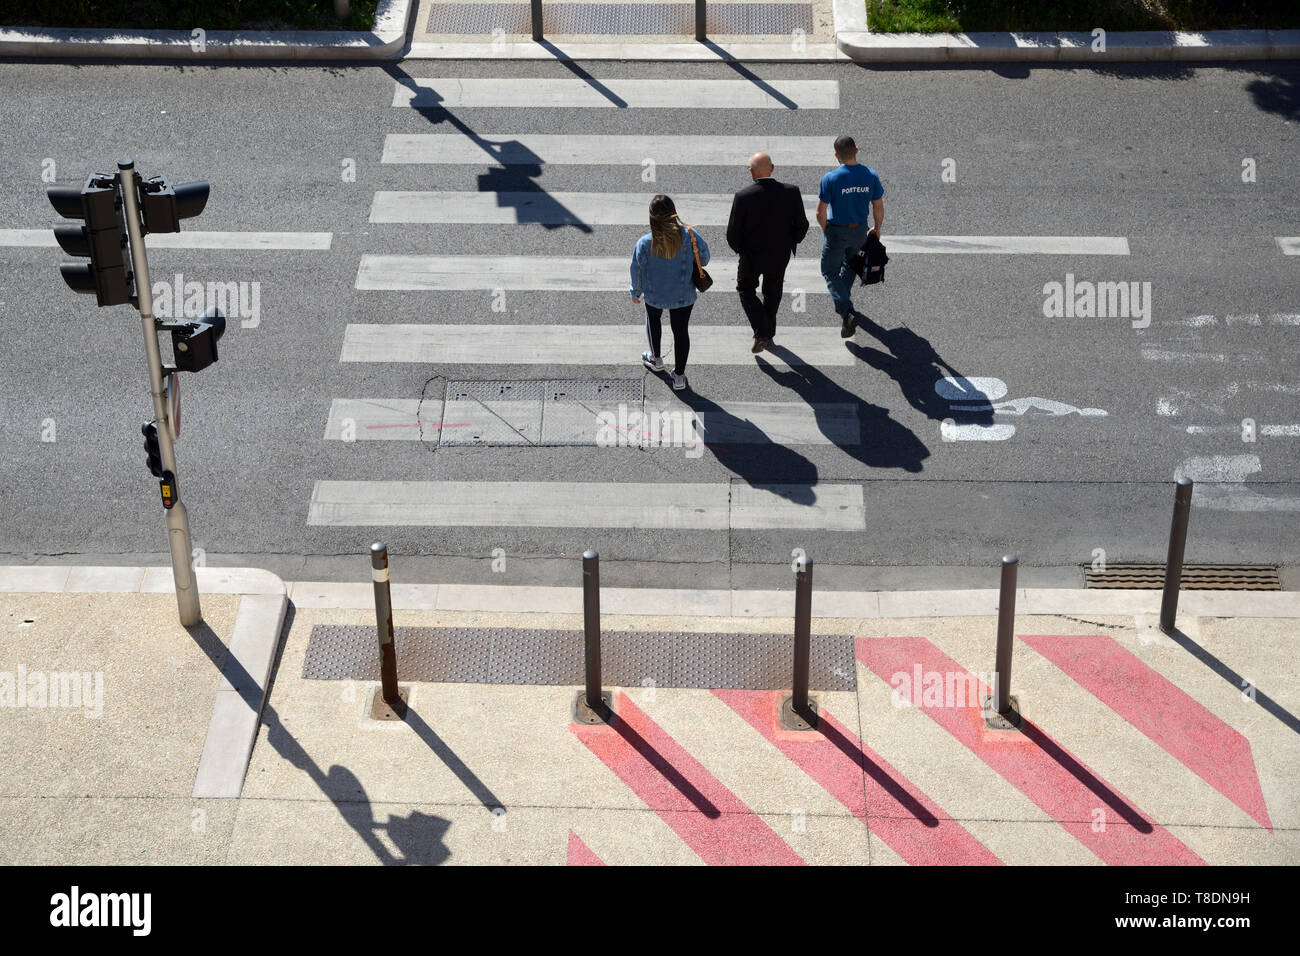 High Angle View of Three People or Pedestrians Crossing Pedestrian Crossing or Zebra Marseille France Stock Photo